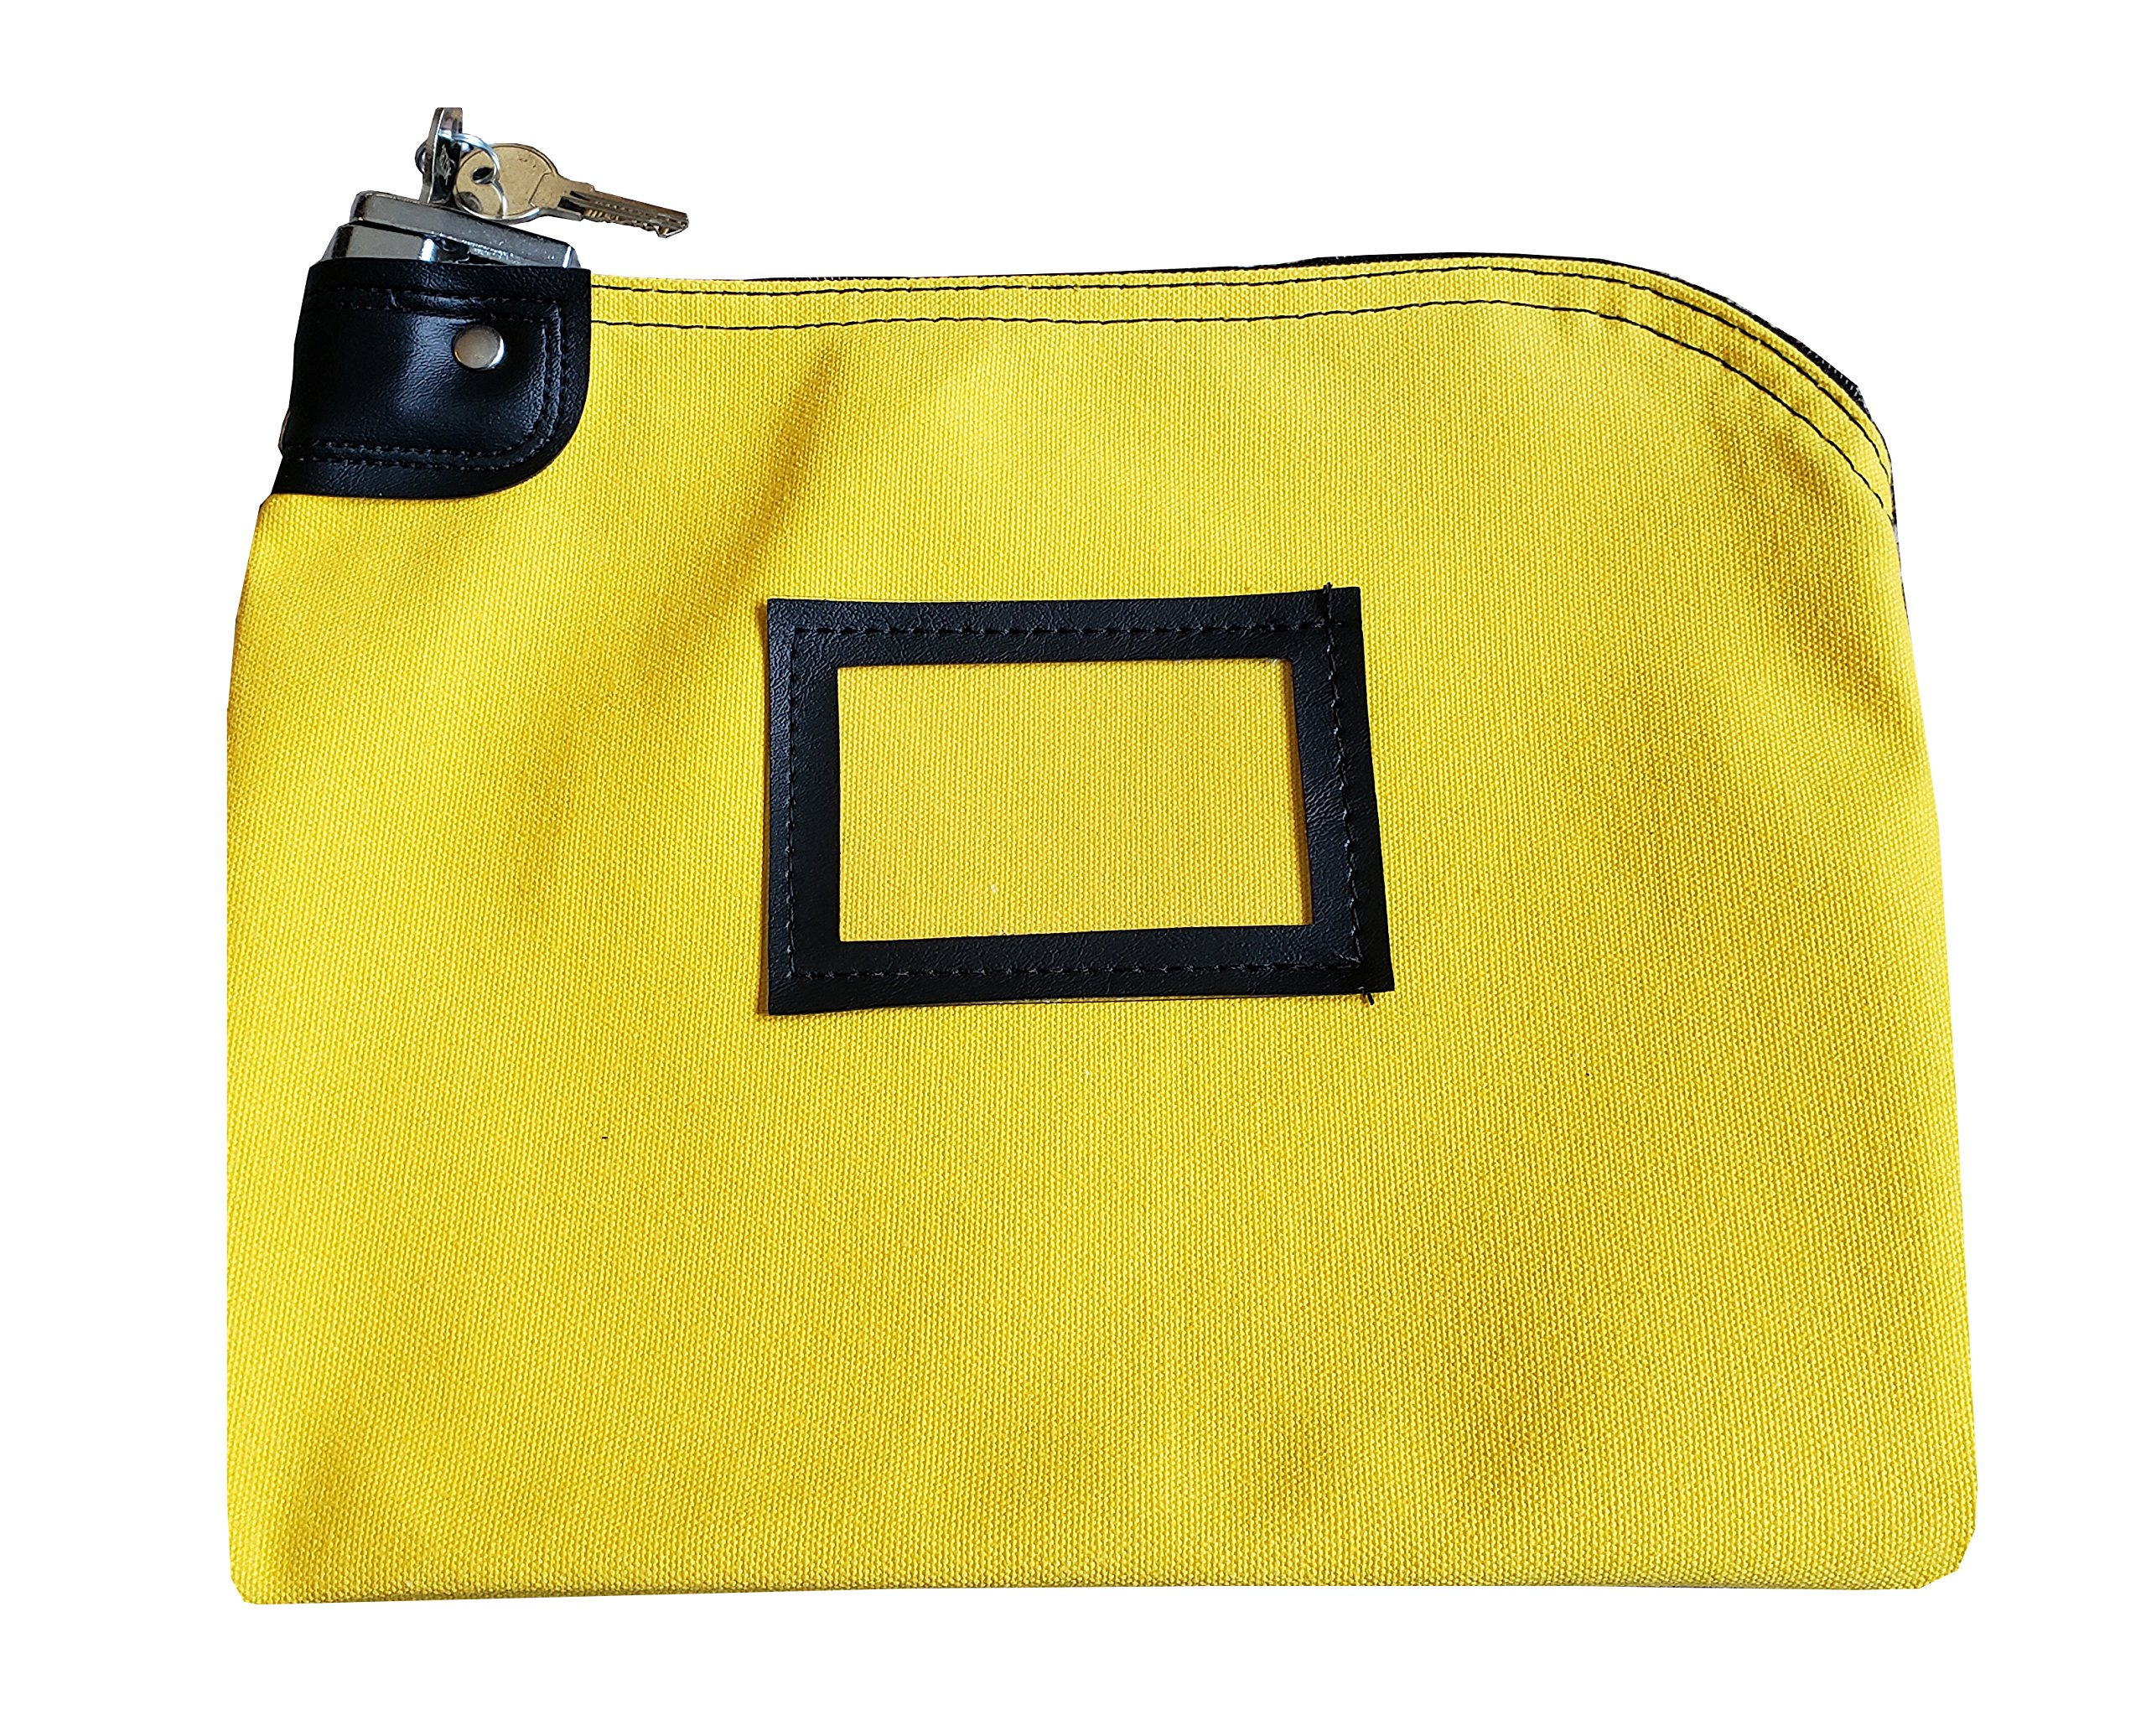 Locking Money Bank Bags with Keys (Small) Deposit Cash, Coins, Bills, Change | Lockable Security, Keyed Entry | Heavy-Duty Canvas | Professional Business Banking (Yellow)